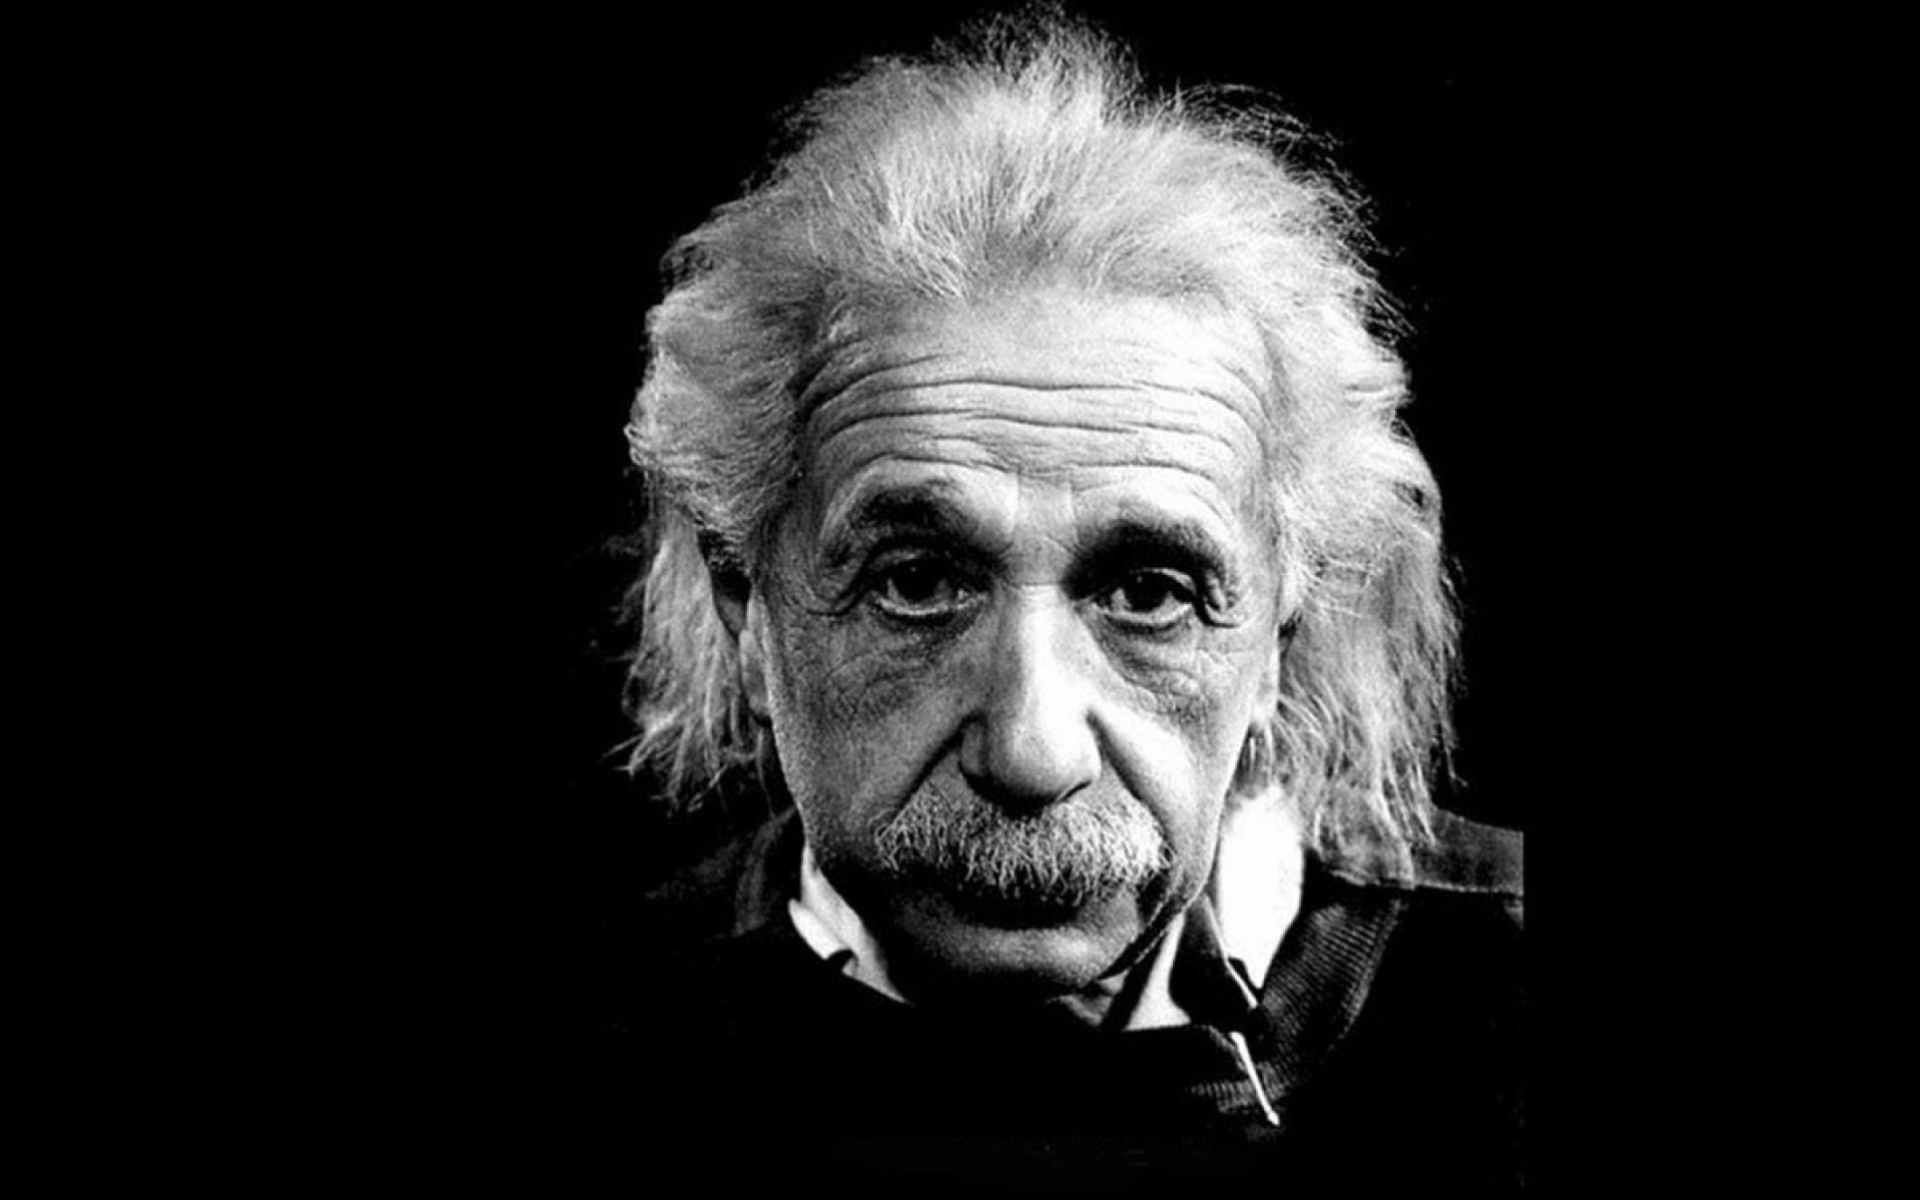 Einstein wallpaper 1920x1200